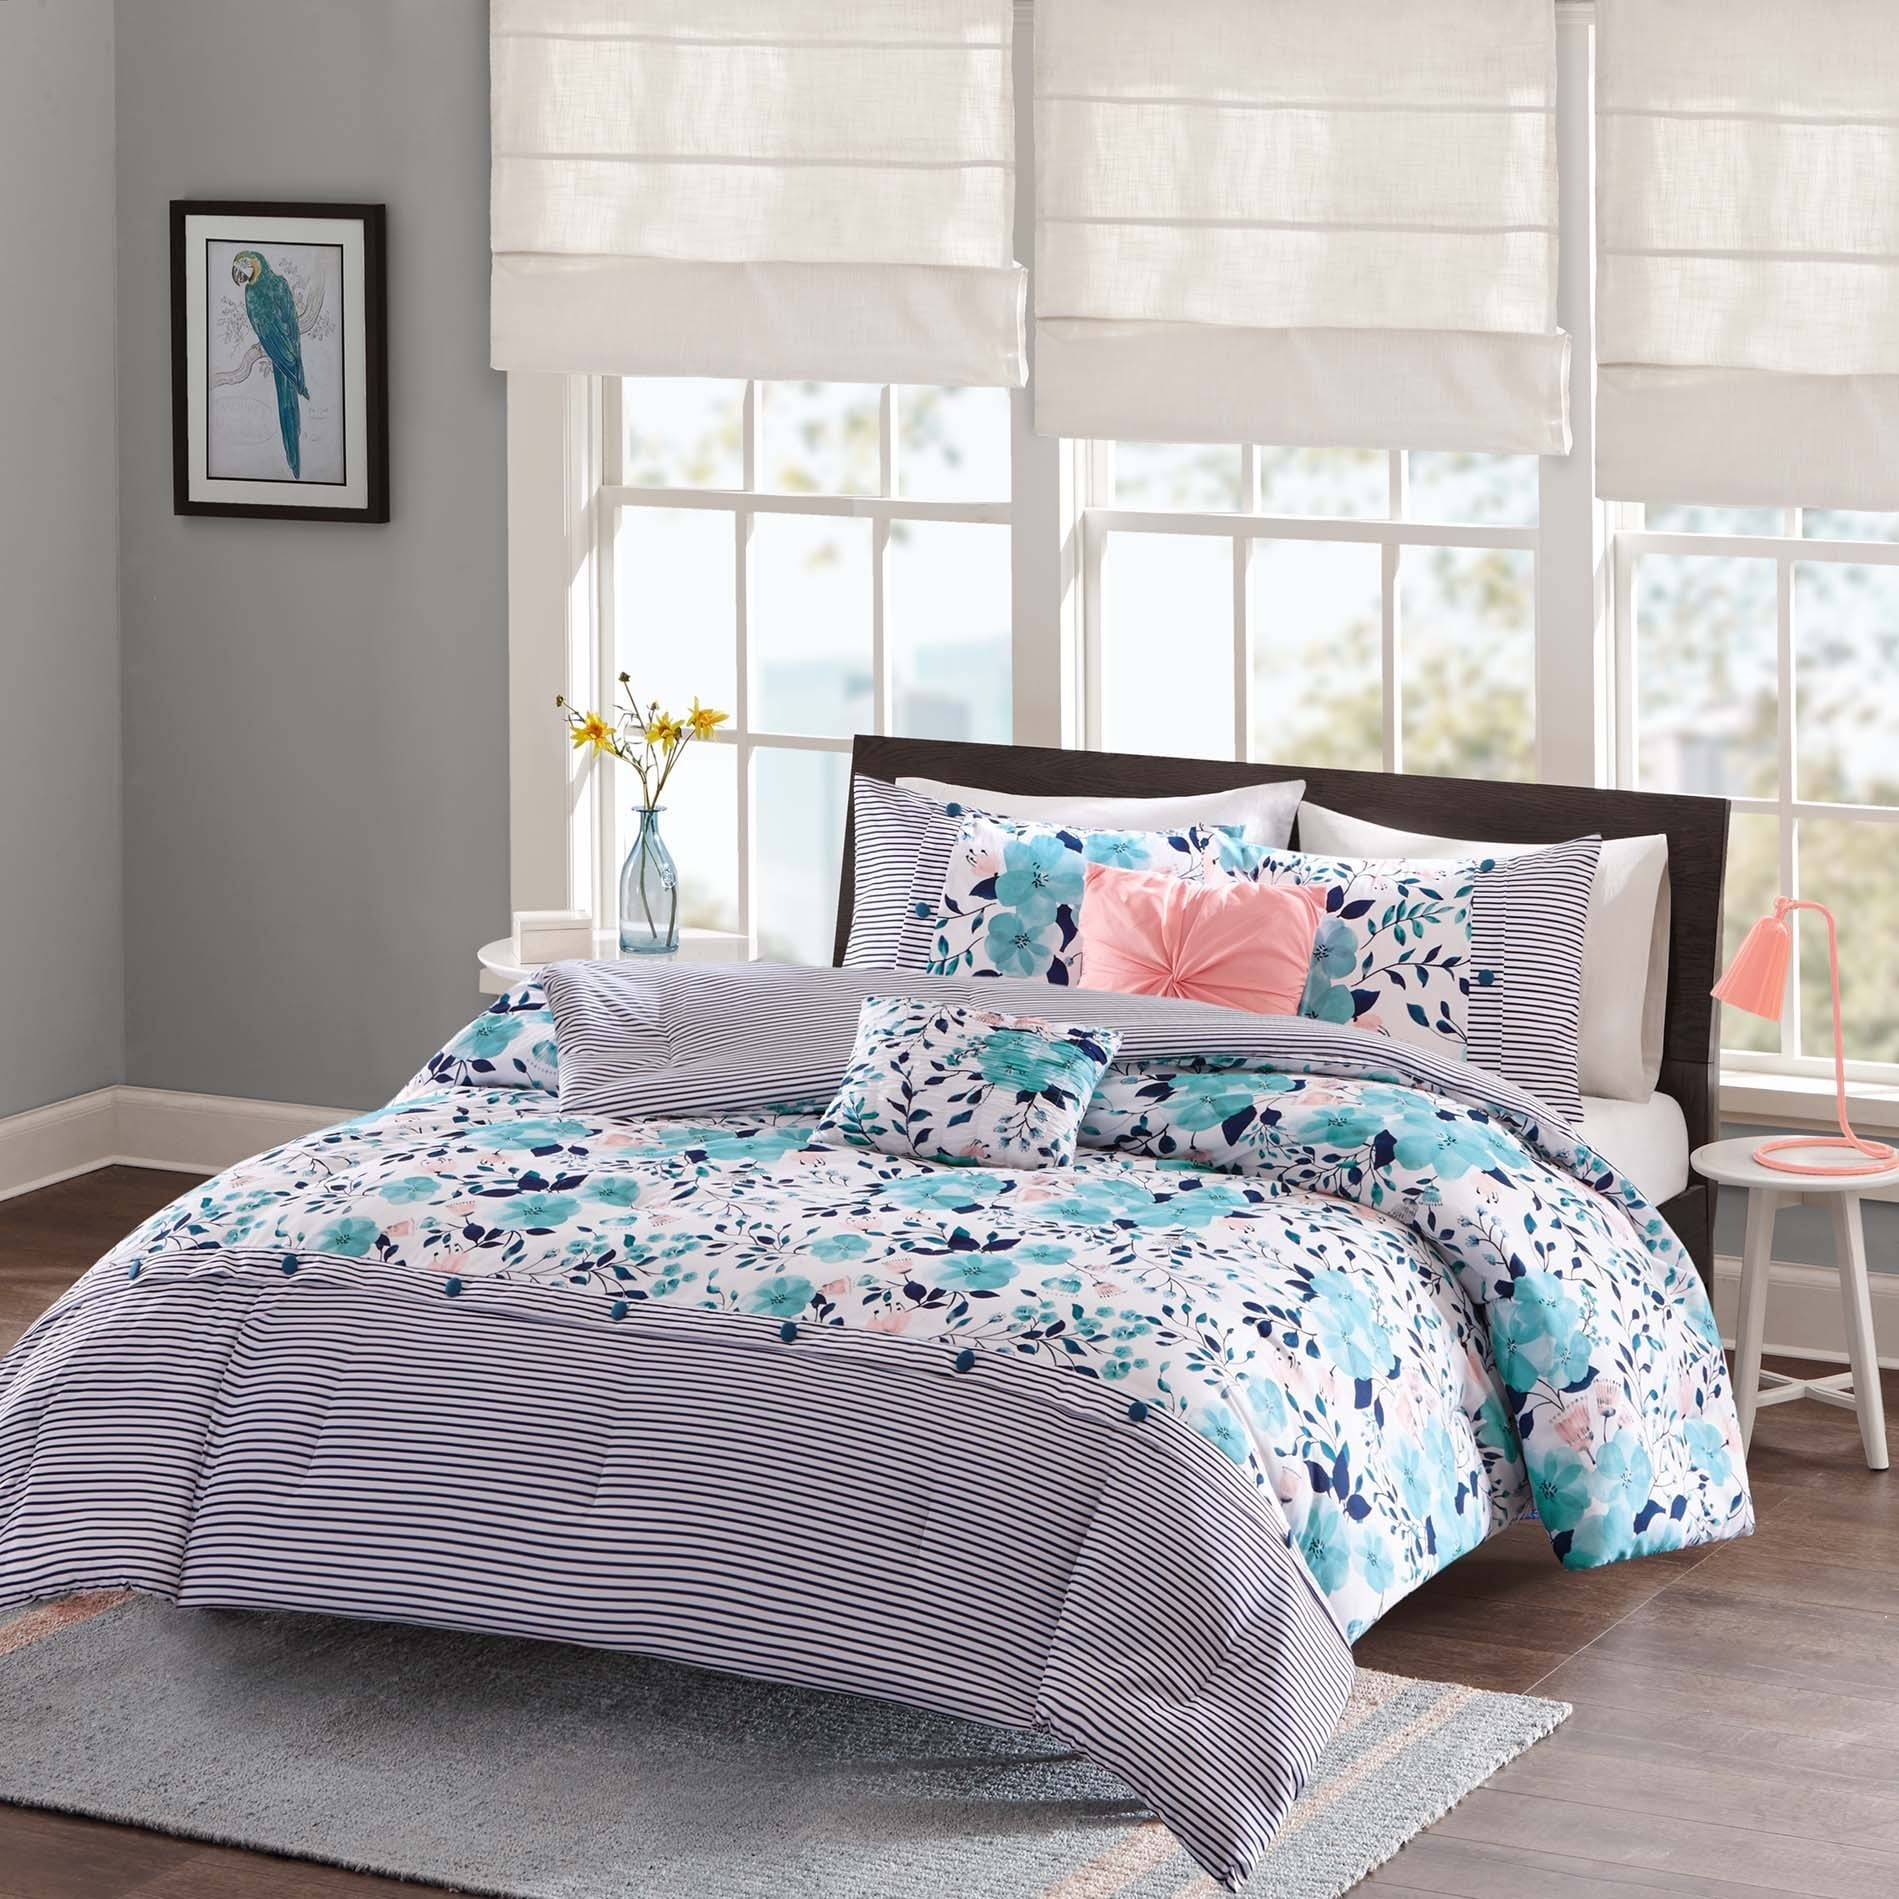 bed red linen bedding set guys twin full buy comforter size collections duck black eloise sets cover navy pink cheap duvet sweetgalas for white floral base blue of sheets king designs queen quilt comforters and duvets shrimandala double mens covers mandala egg